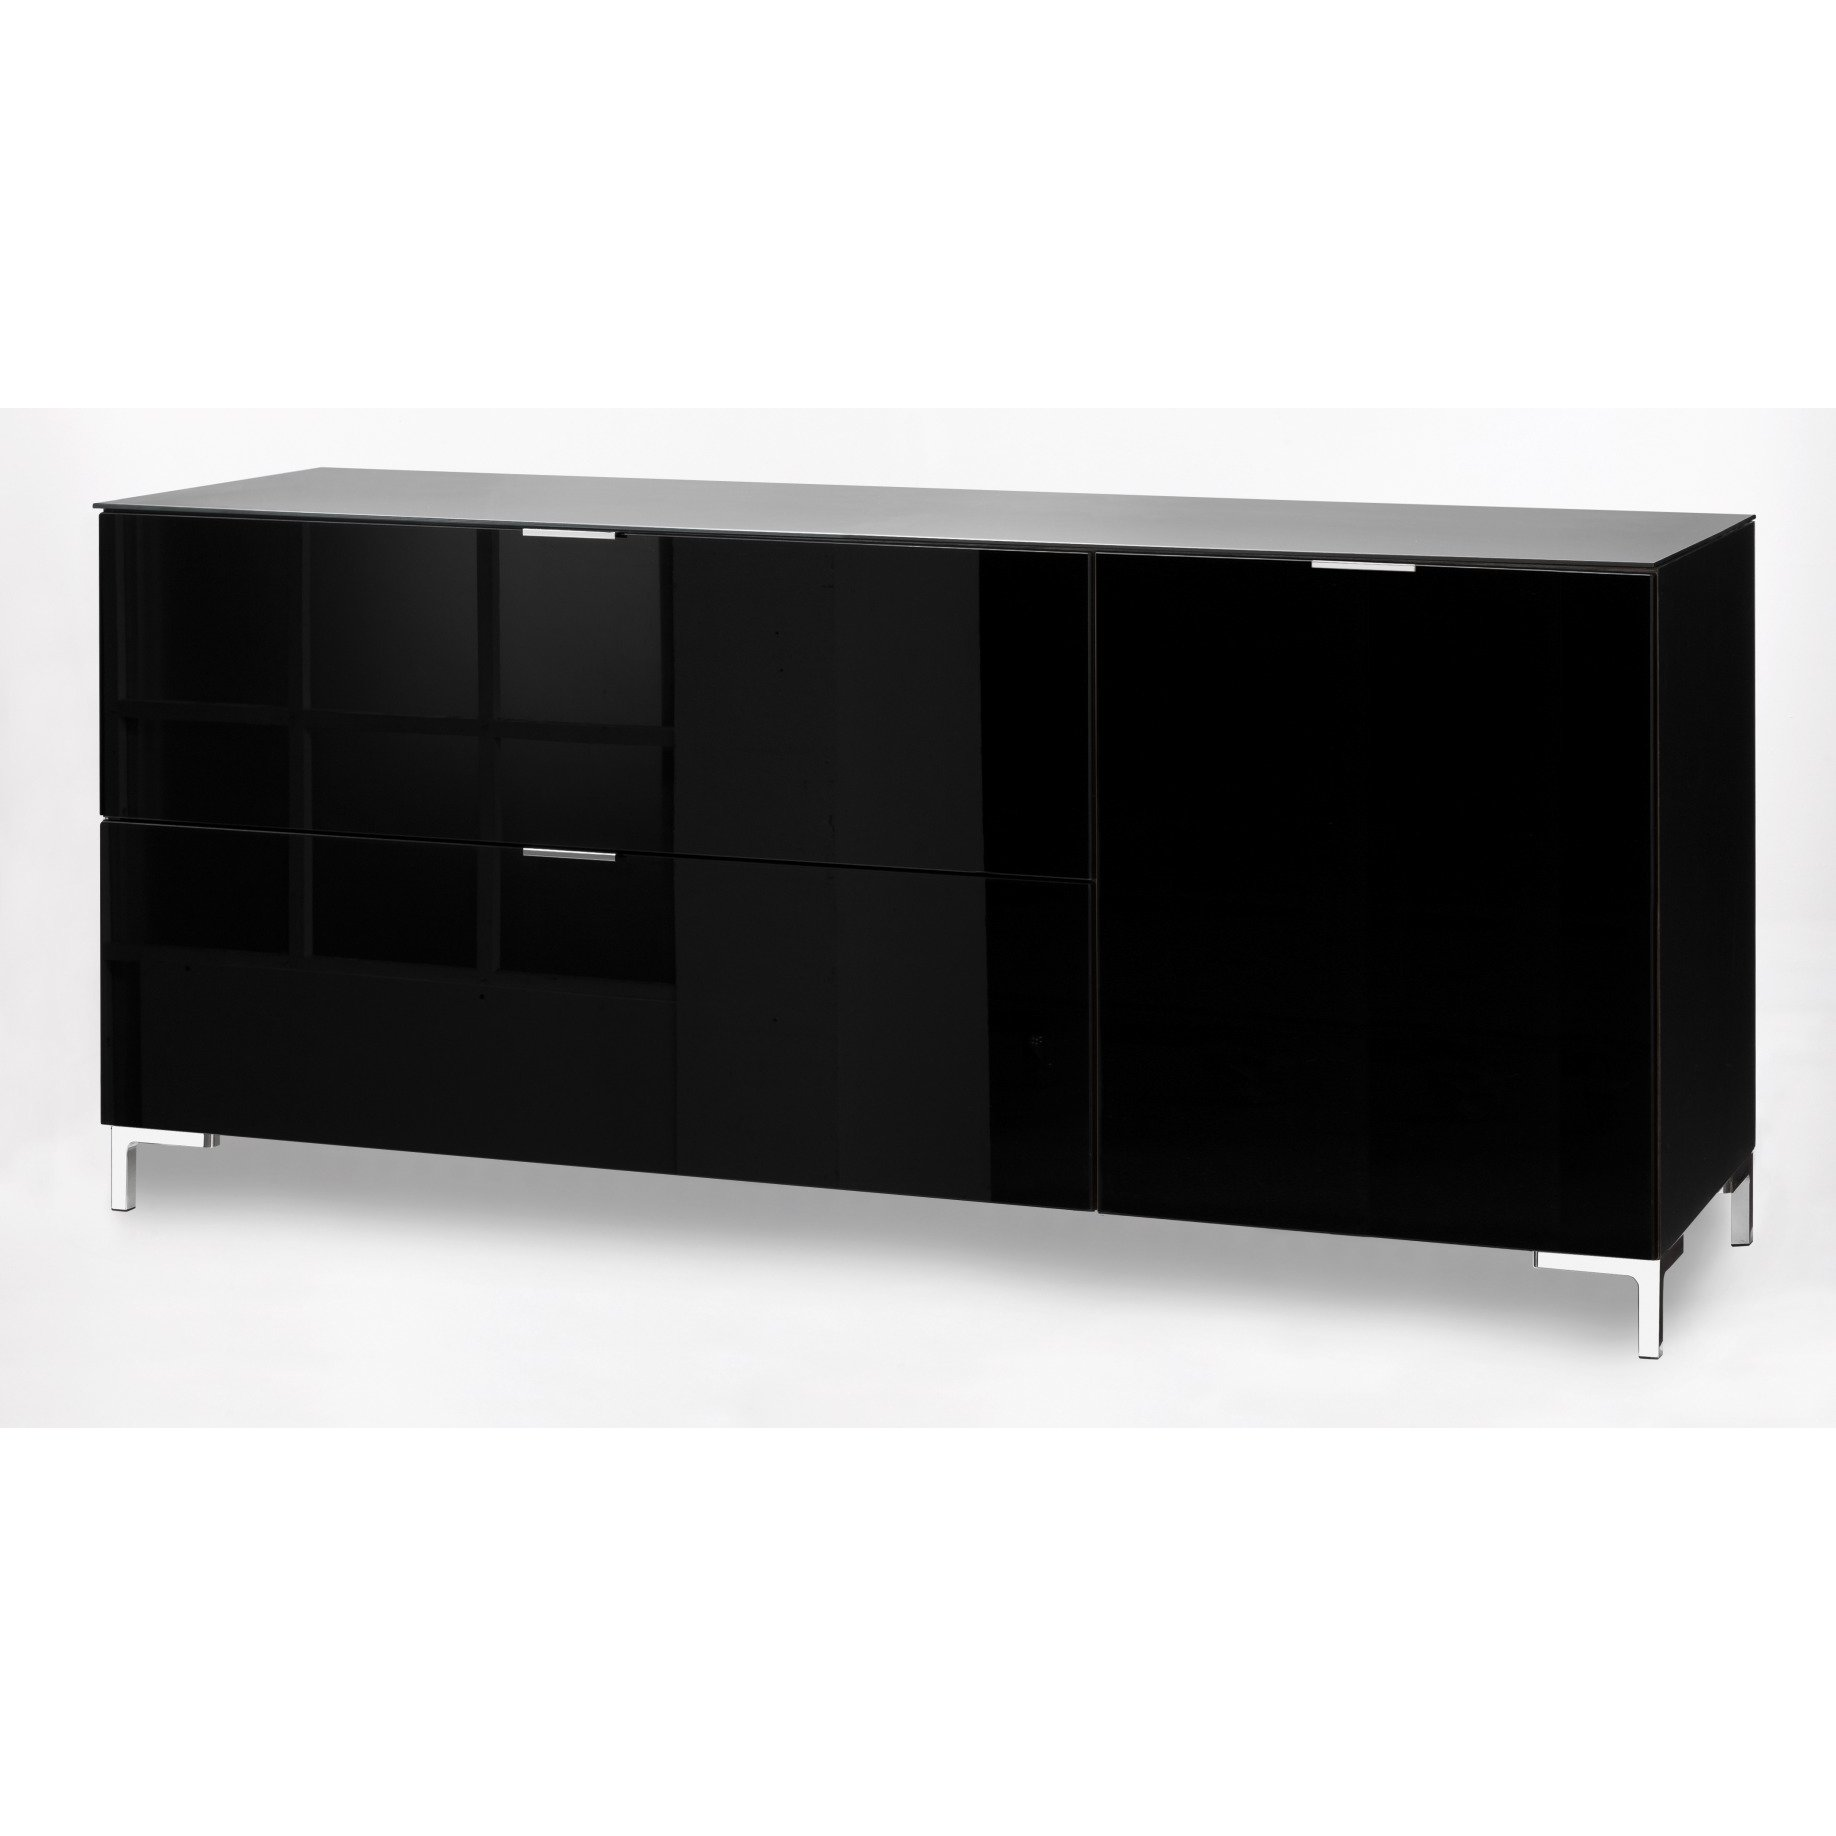 tv schrank in schwarz inspirierendes design f r wohnm bel. Black Bedroom Furniture Sets. Home Design Ideas